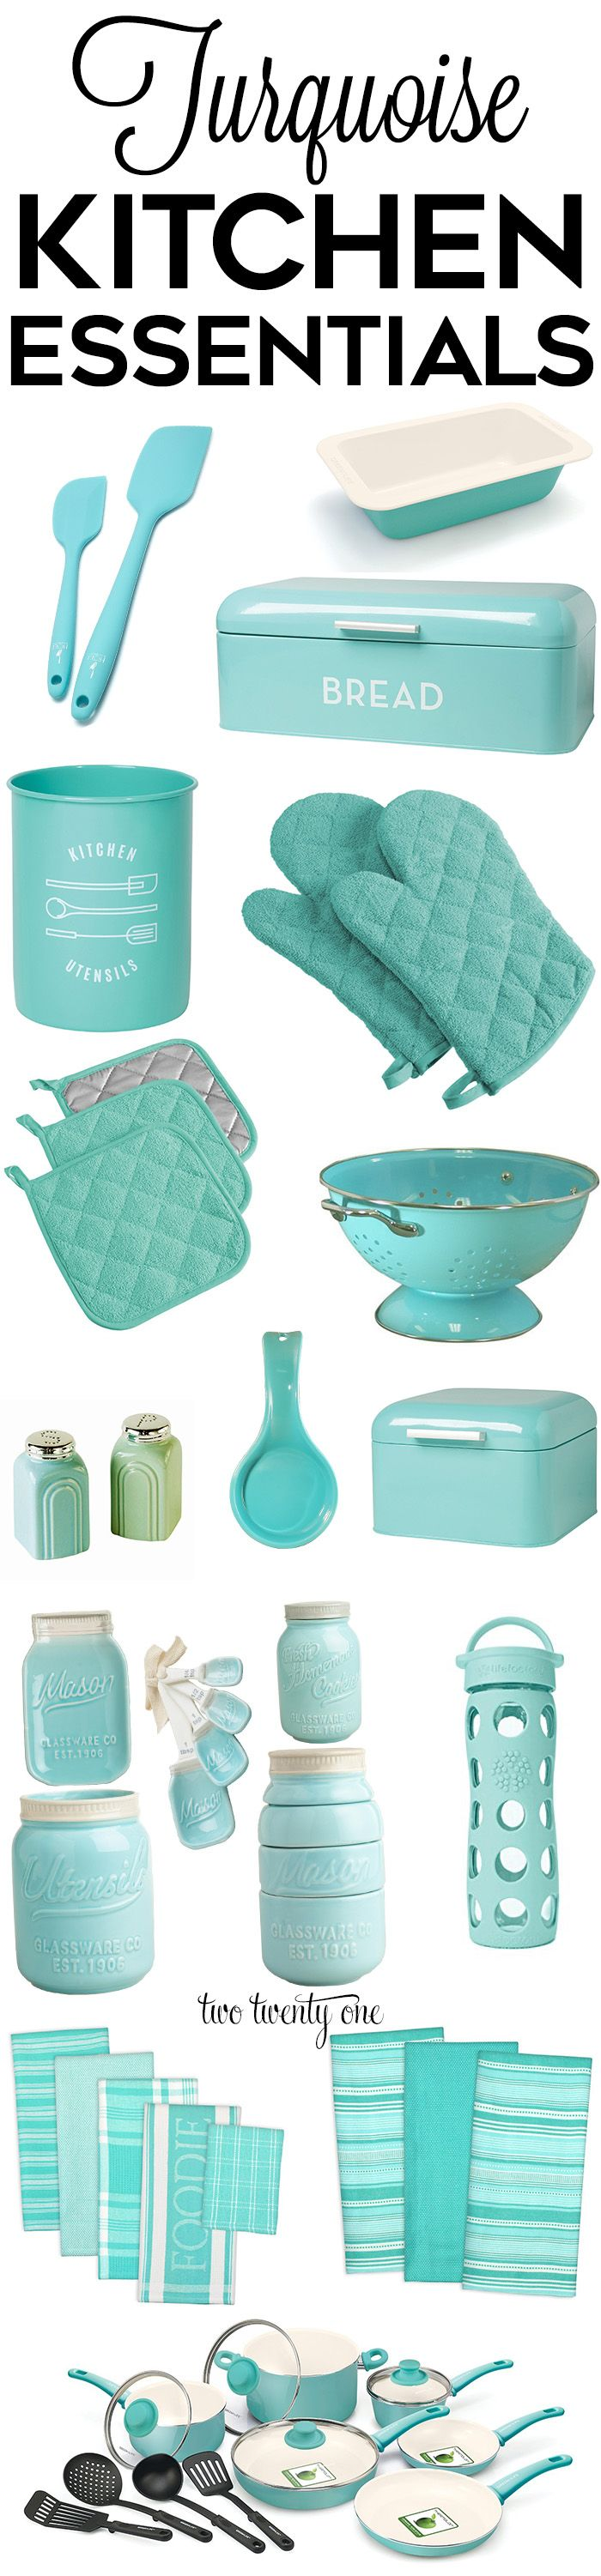 Turquoise Kitchen Decor & Appliances